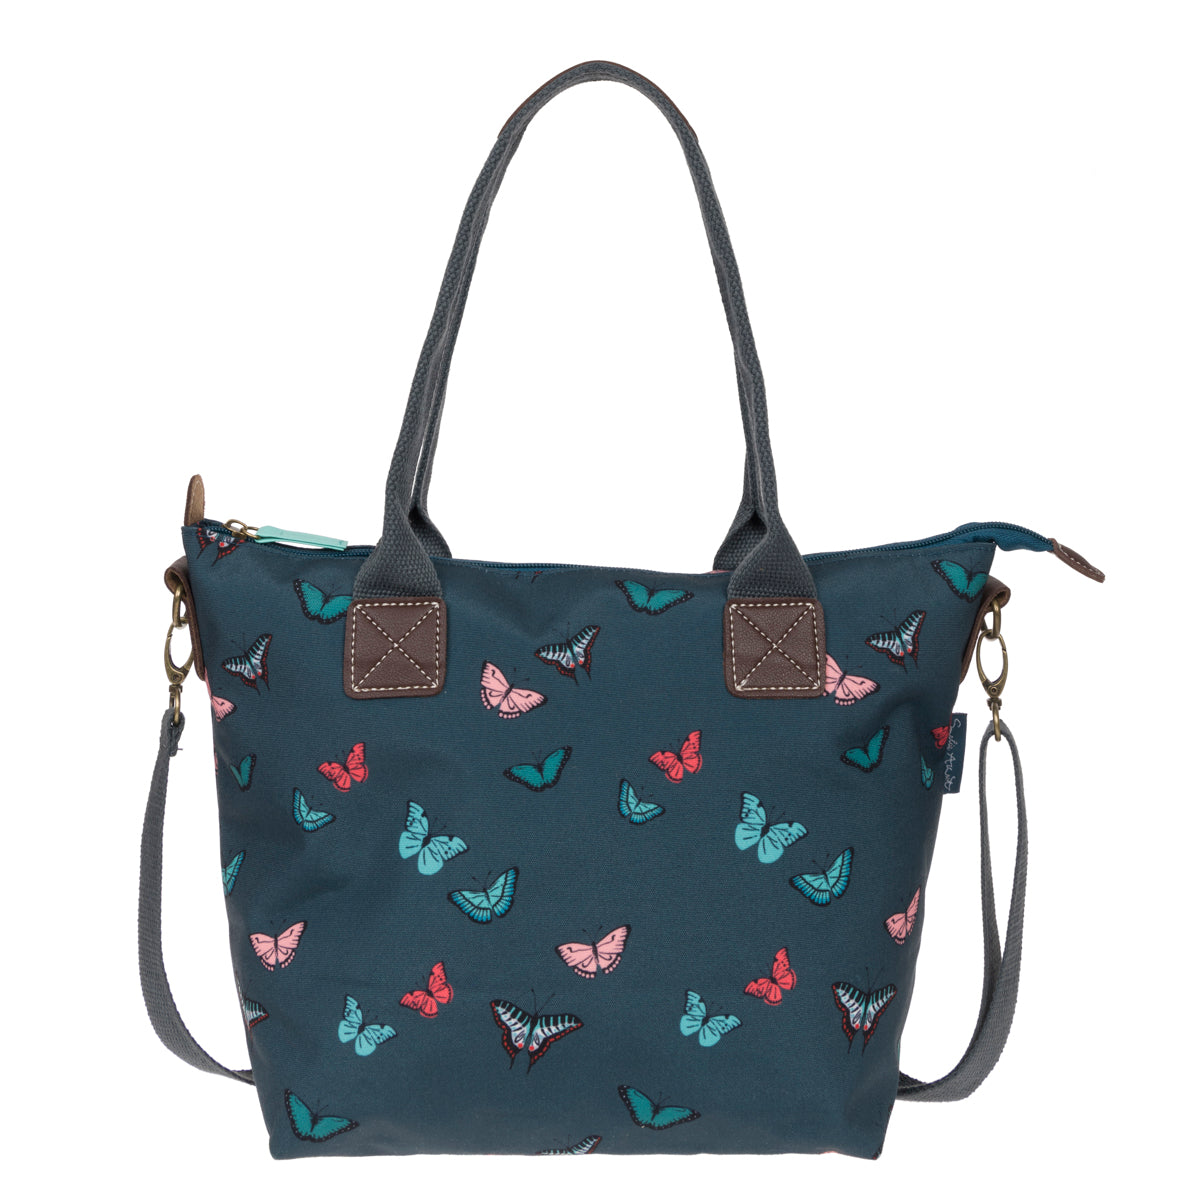 A Blue Butterflies Mini Oundle Bag by Sophie Allport.